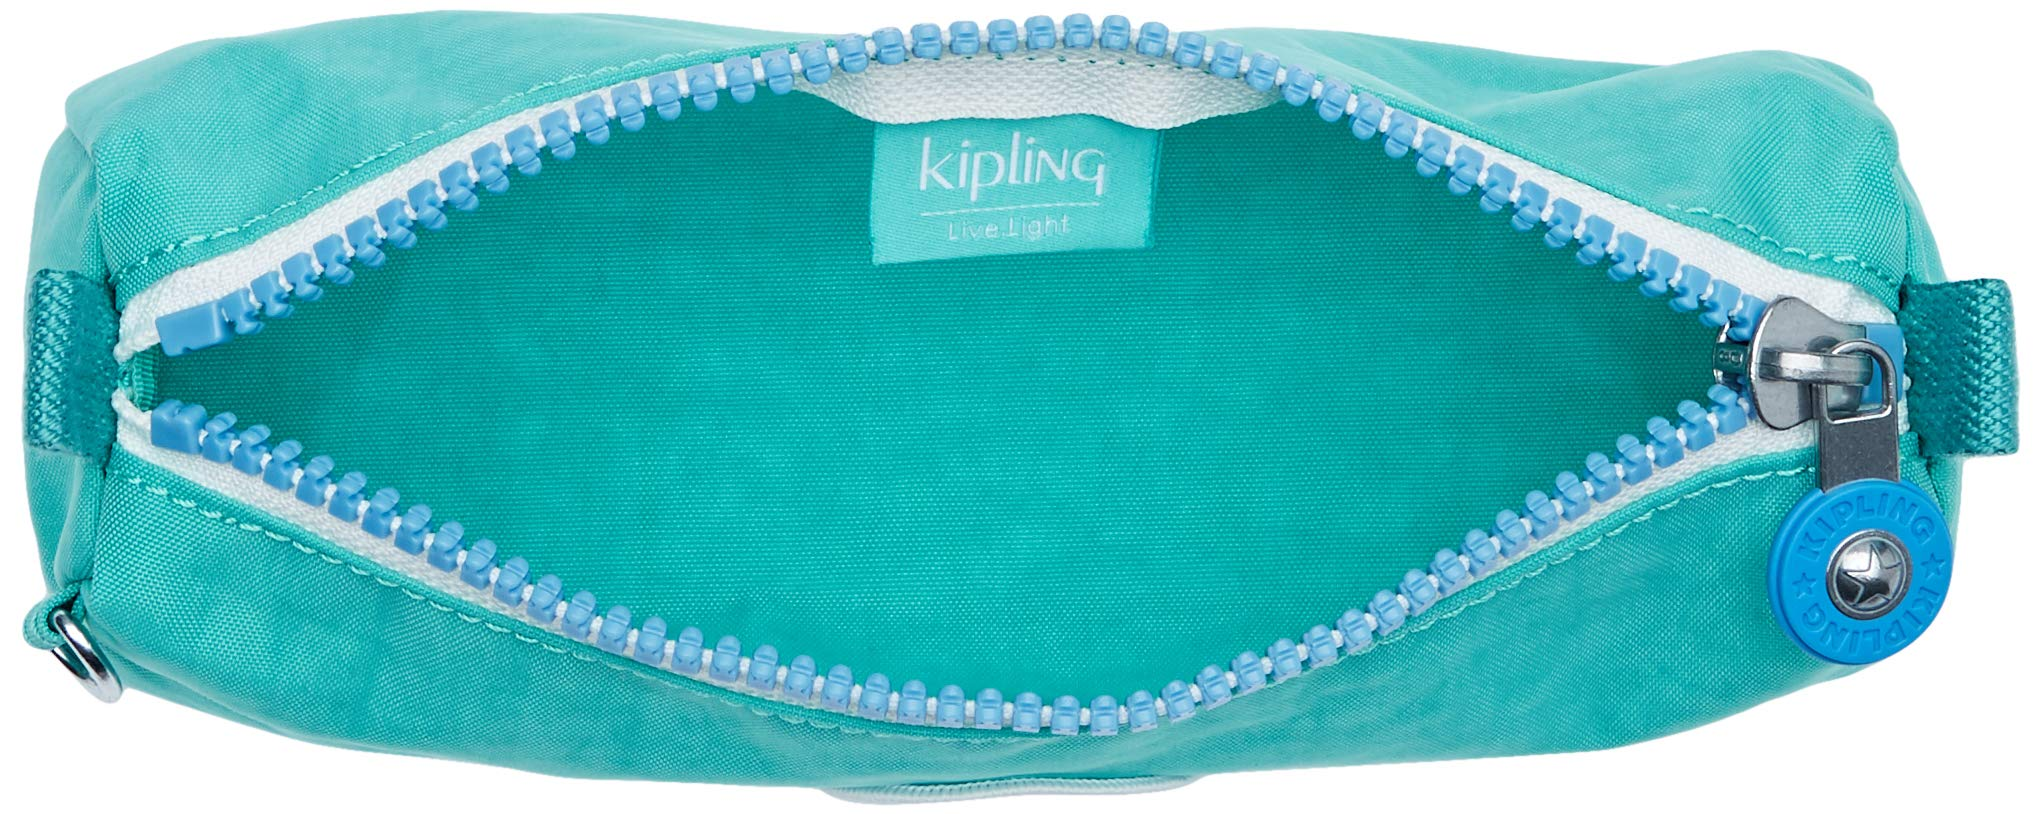 Kipling Freedom Estuches, 22 Centimeters